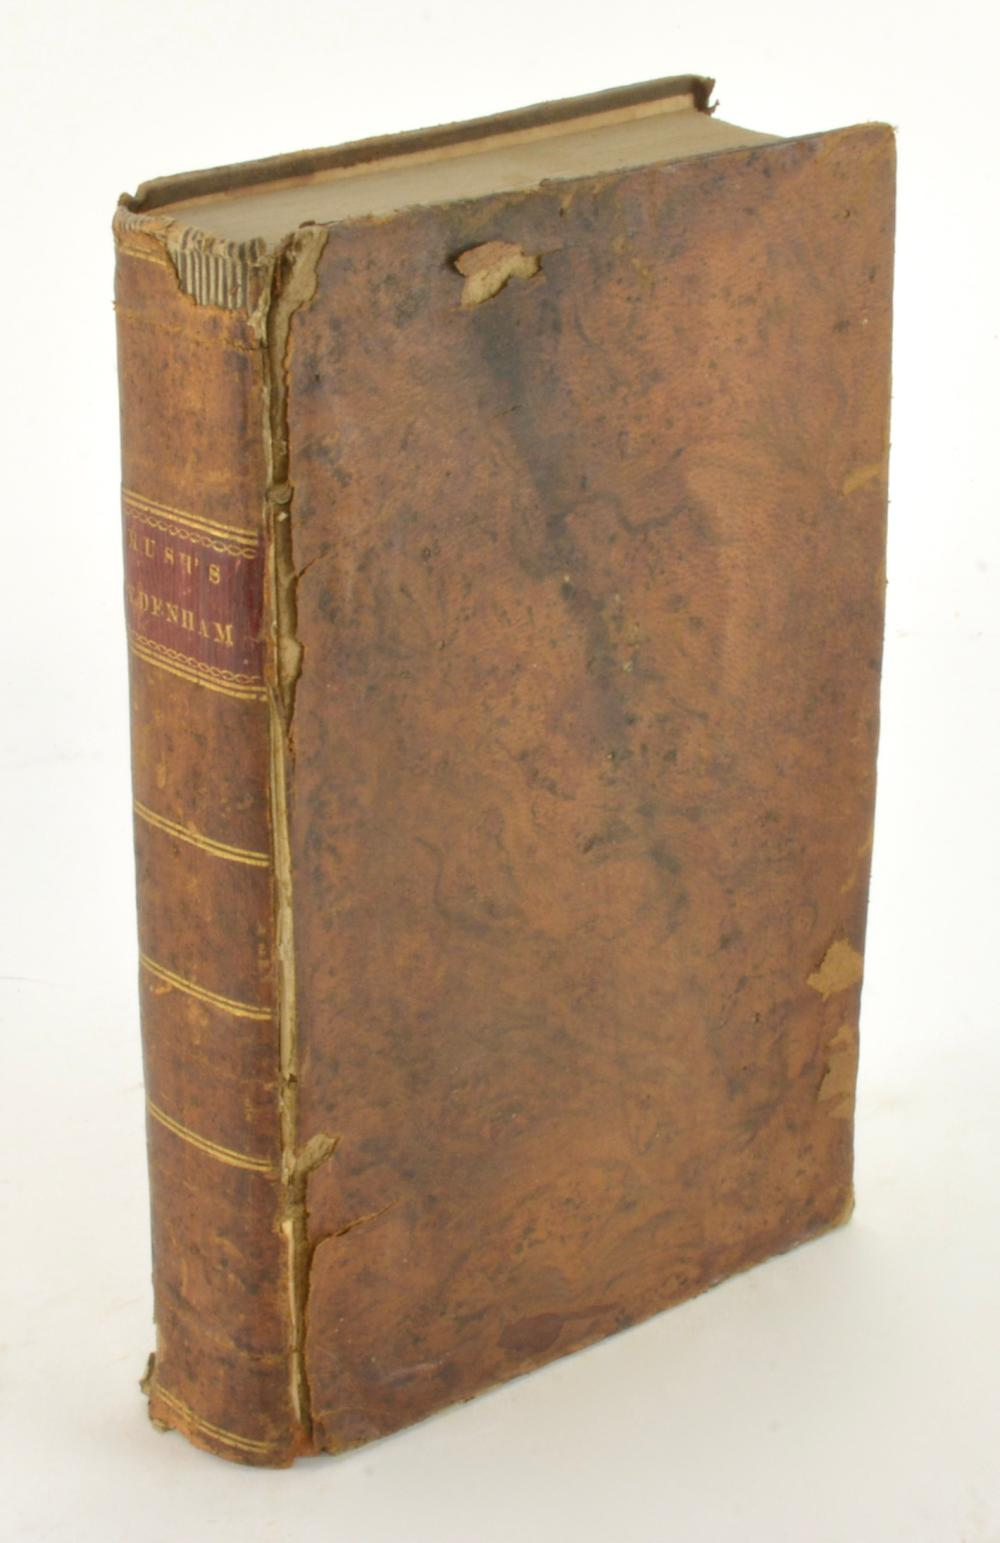 The Works Of Thomas Sydenham Acute And Chronic Diseases By Benjamin Rush 1815 Philadelphia